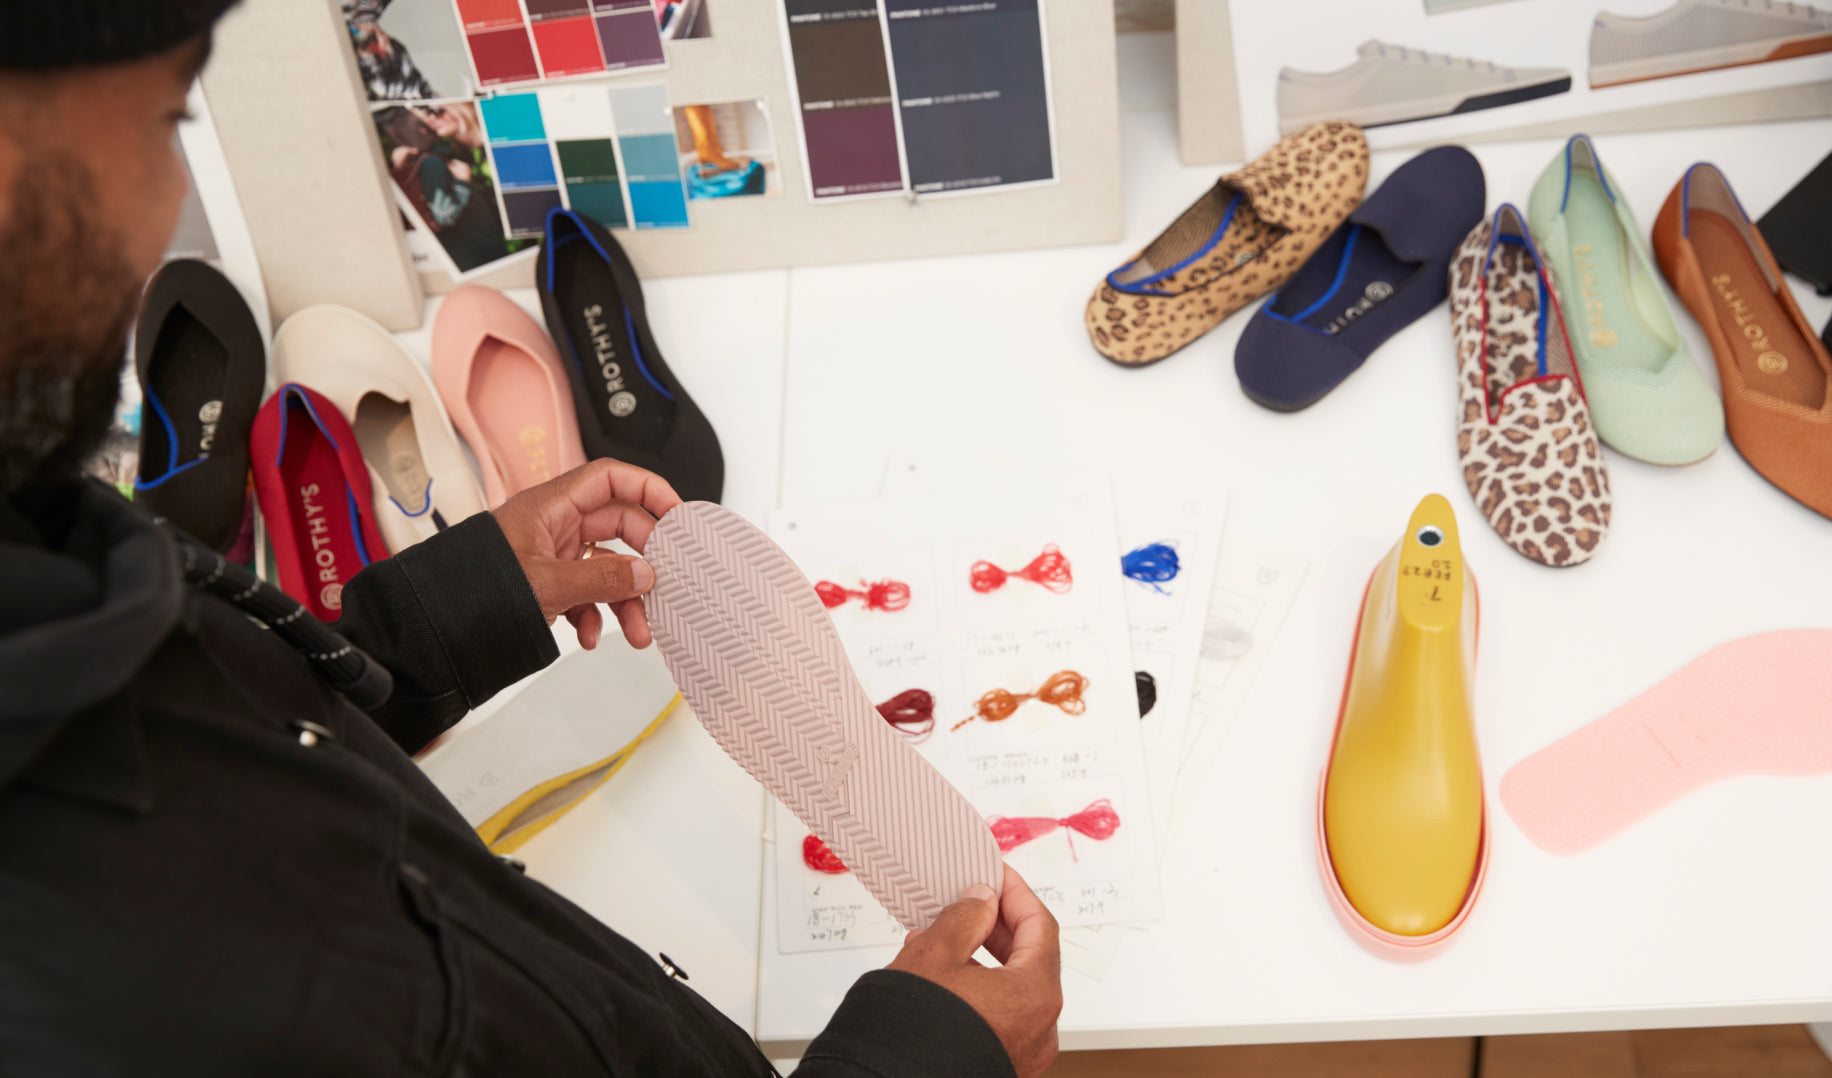 Lavion holding a light pink shoe outsole in front of a table with shoes and design materials.